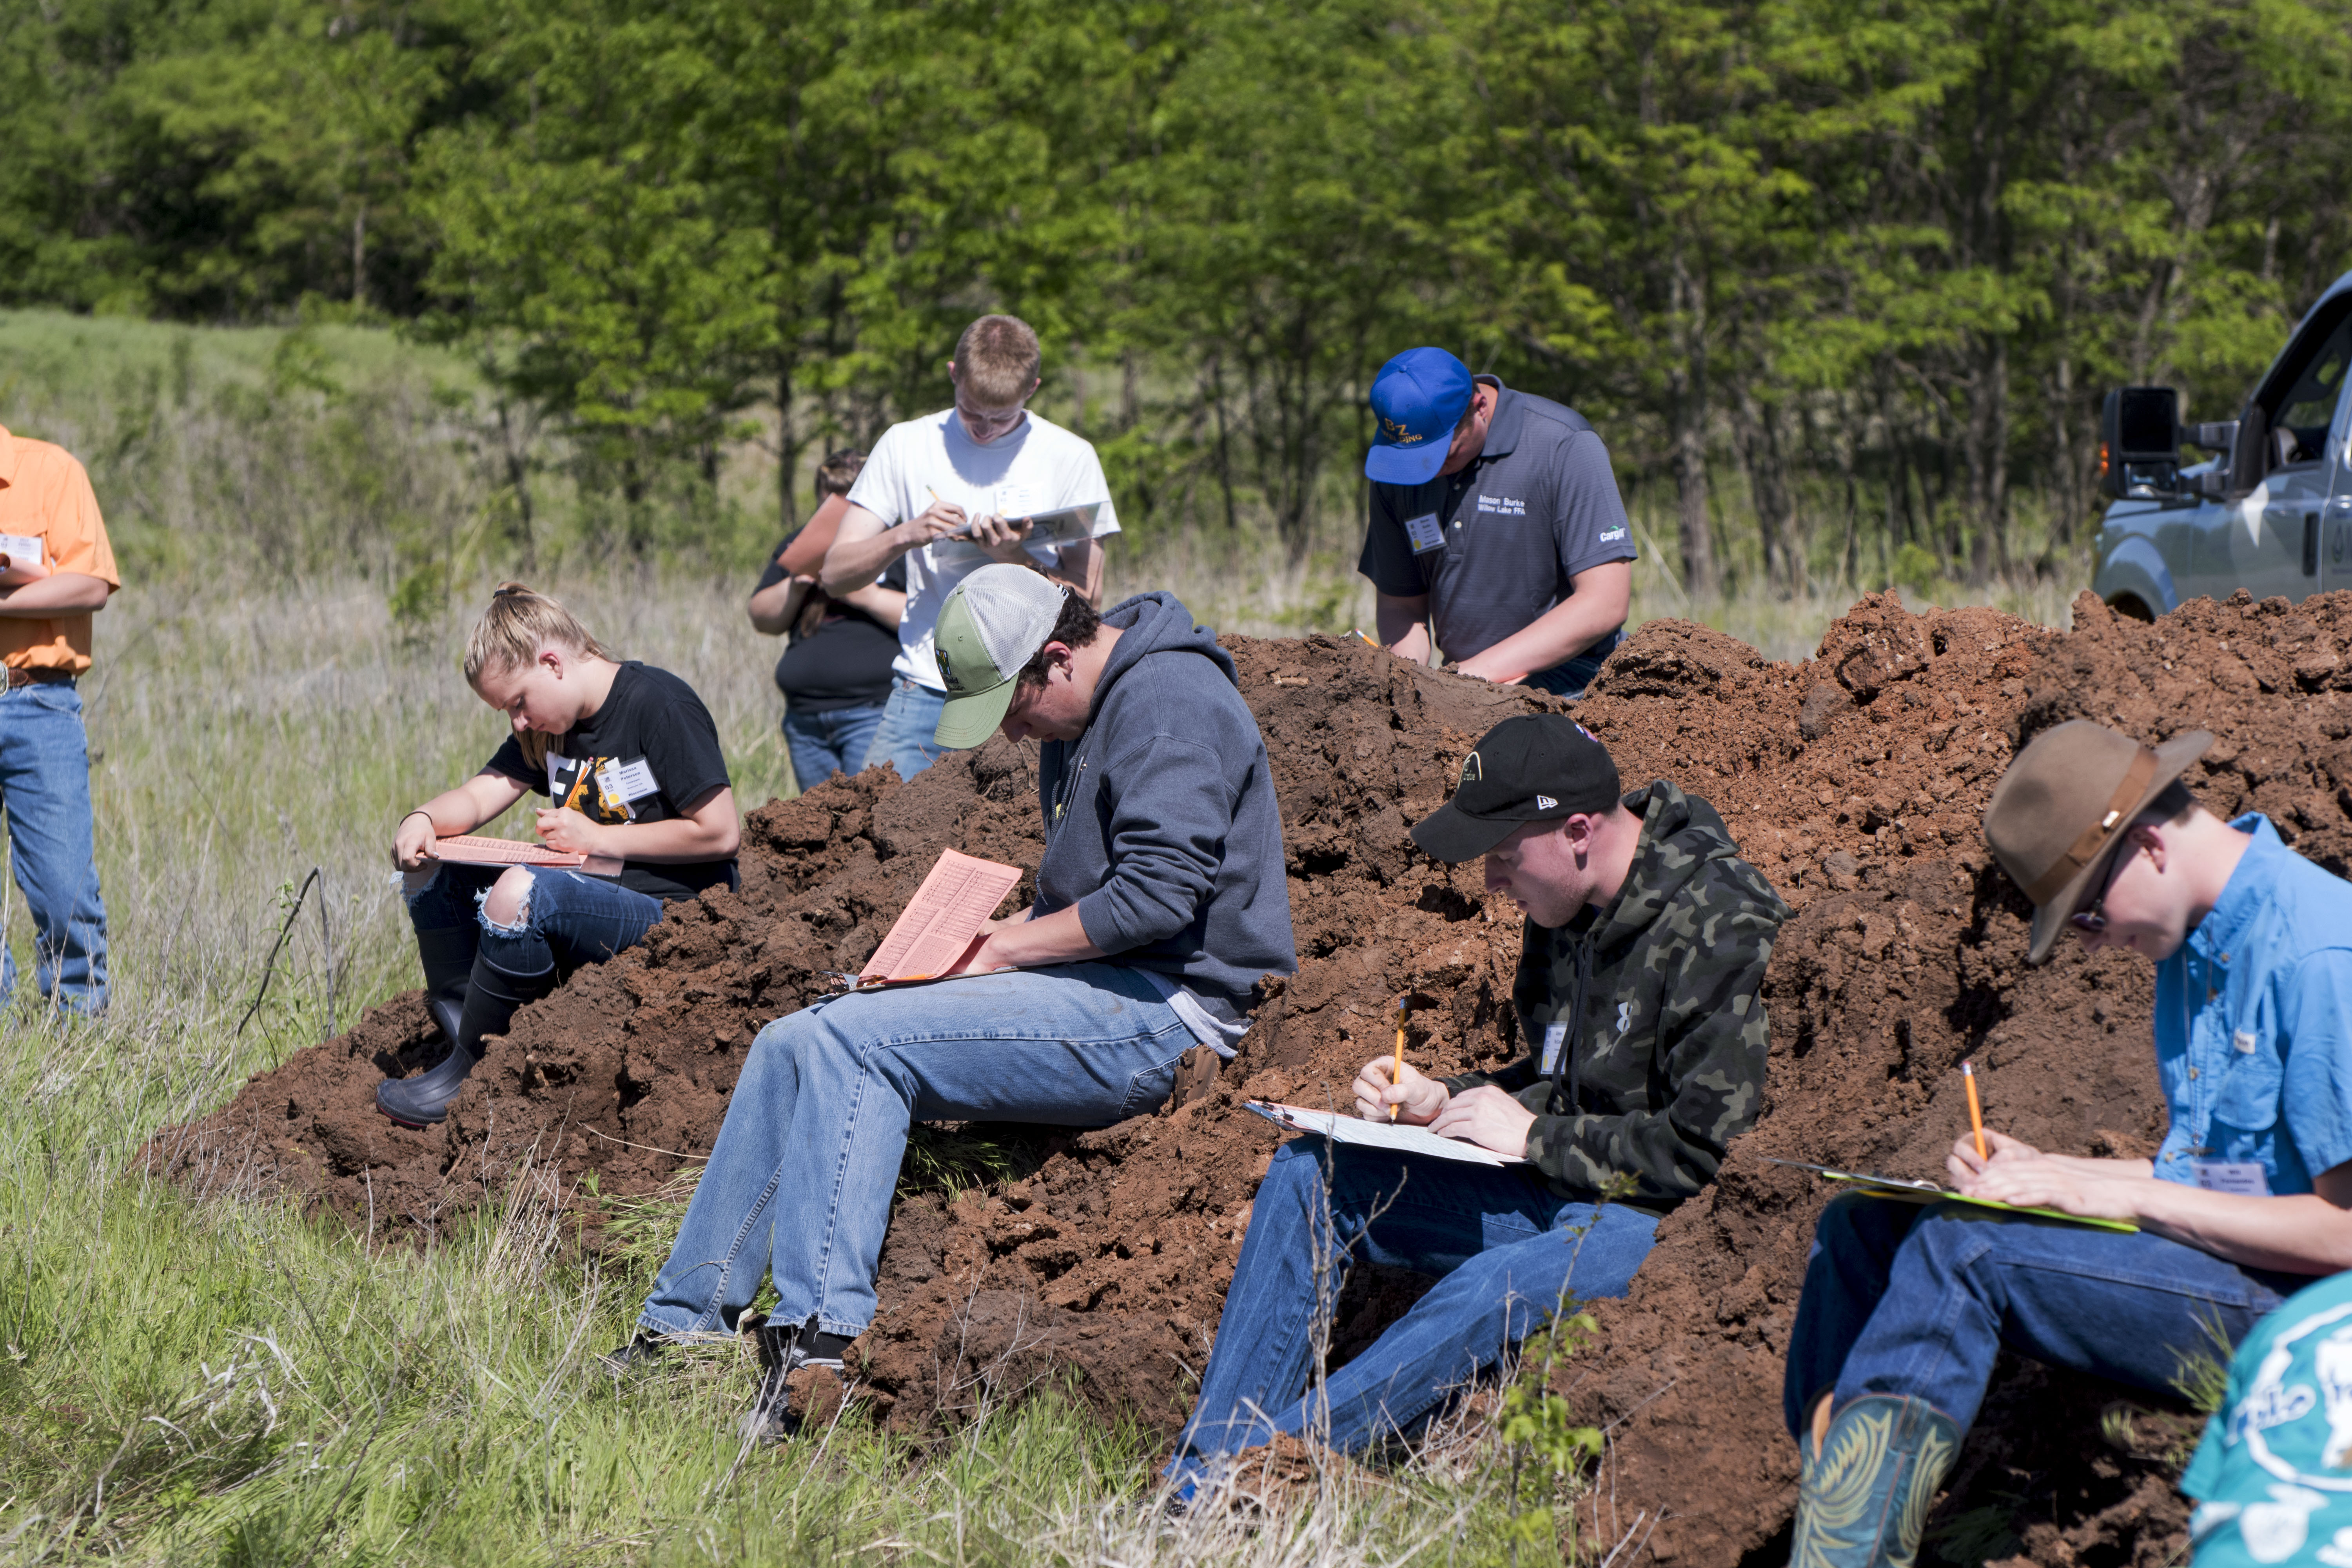 Land judging contestants sit on a mound of soil